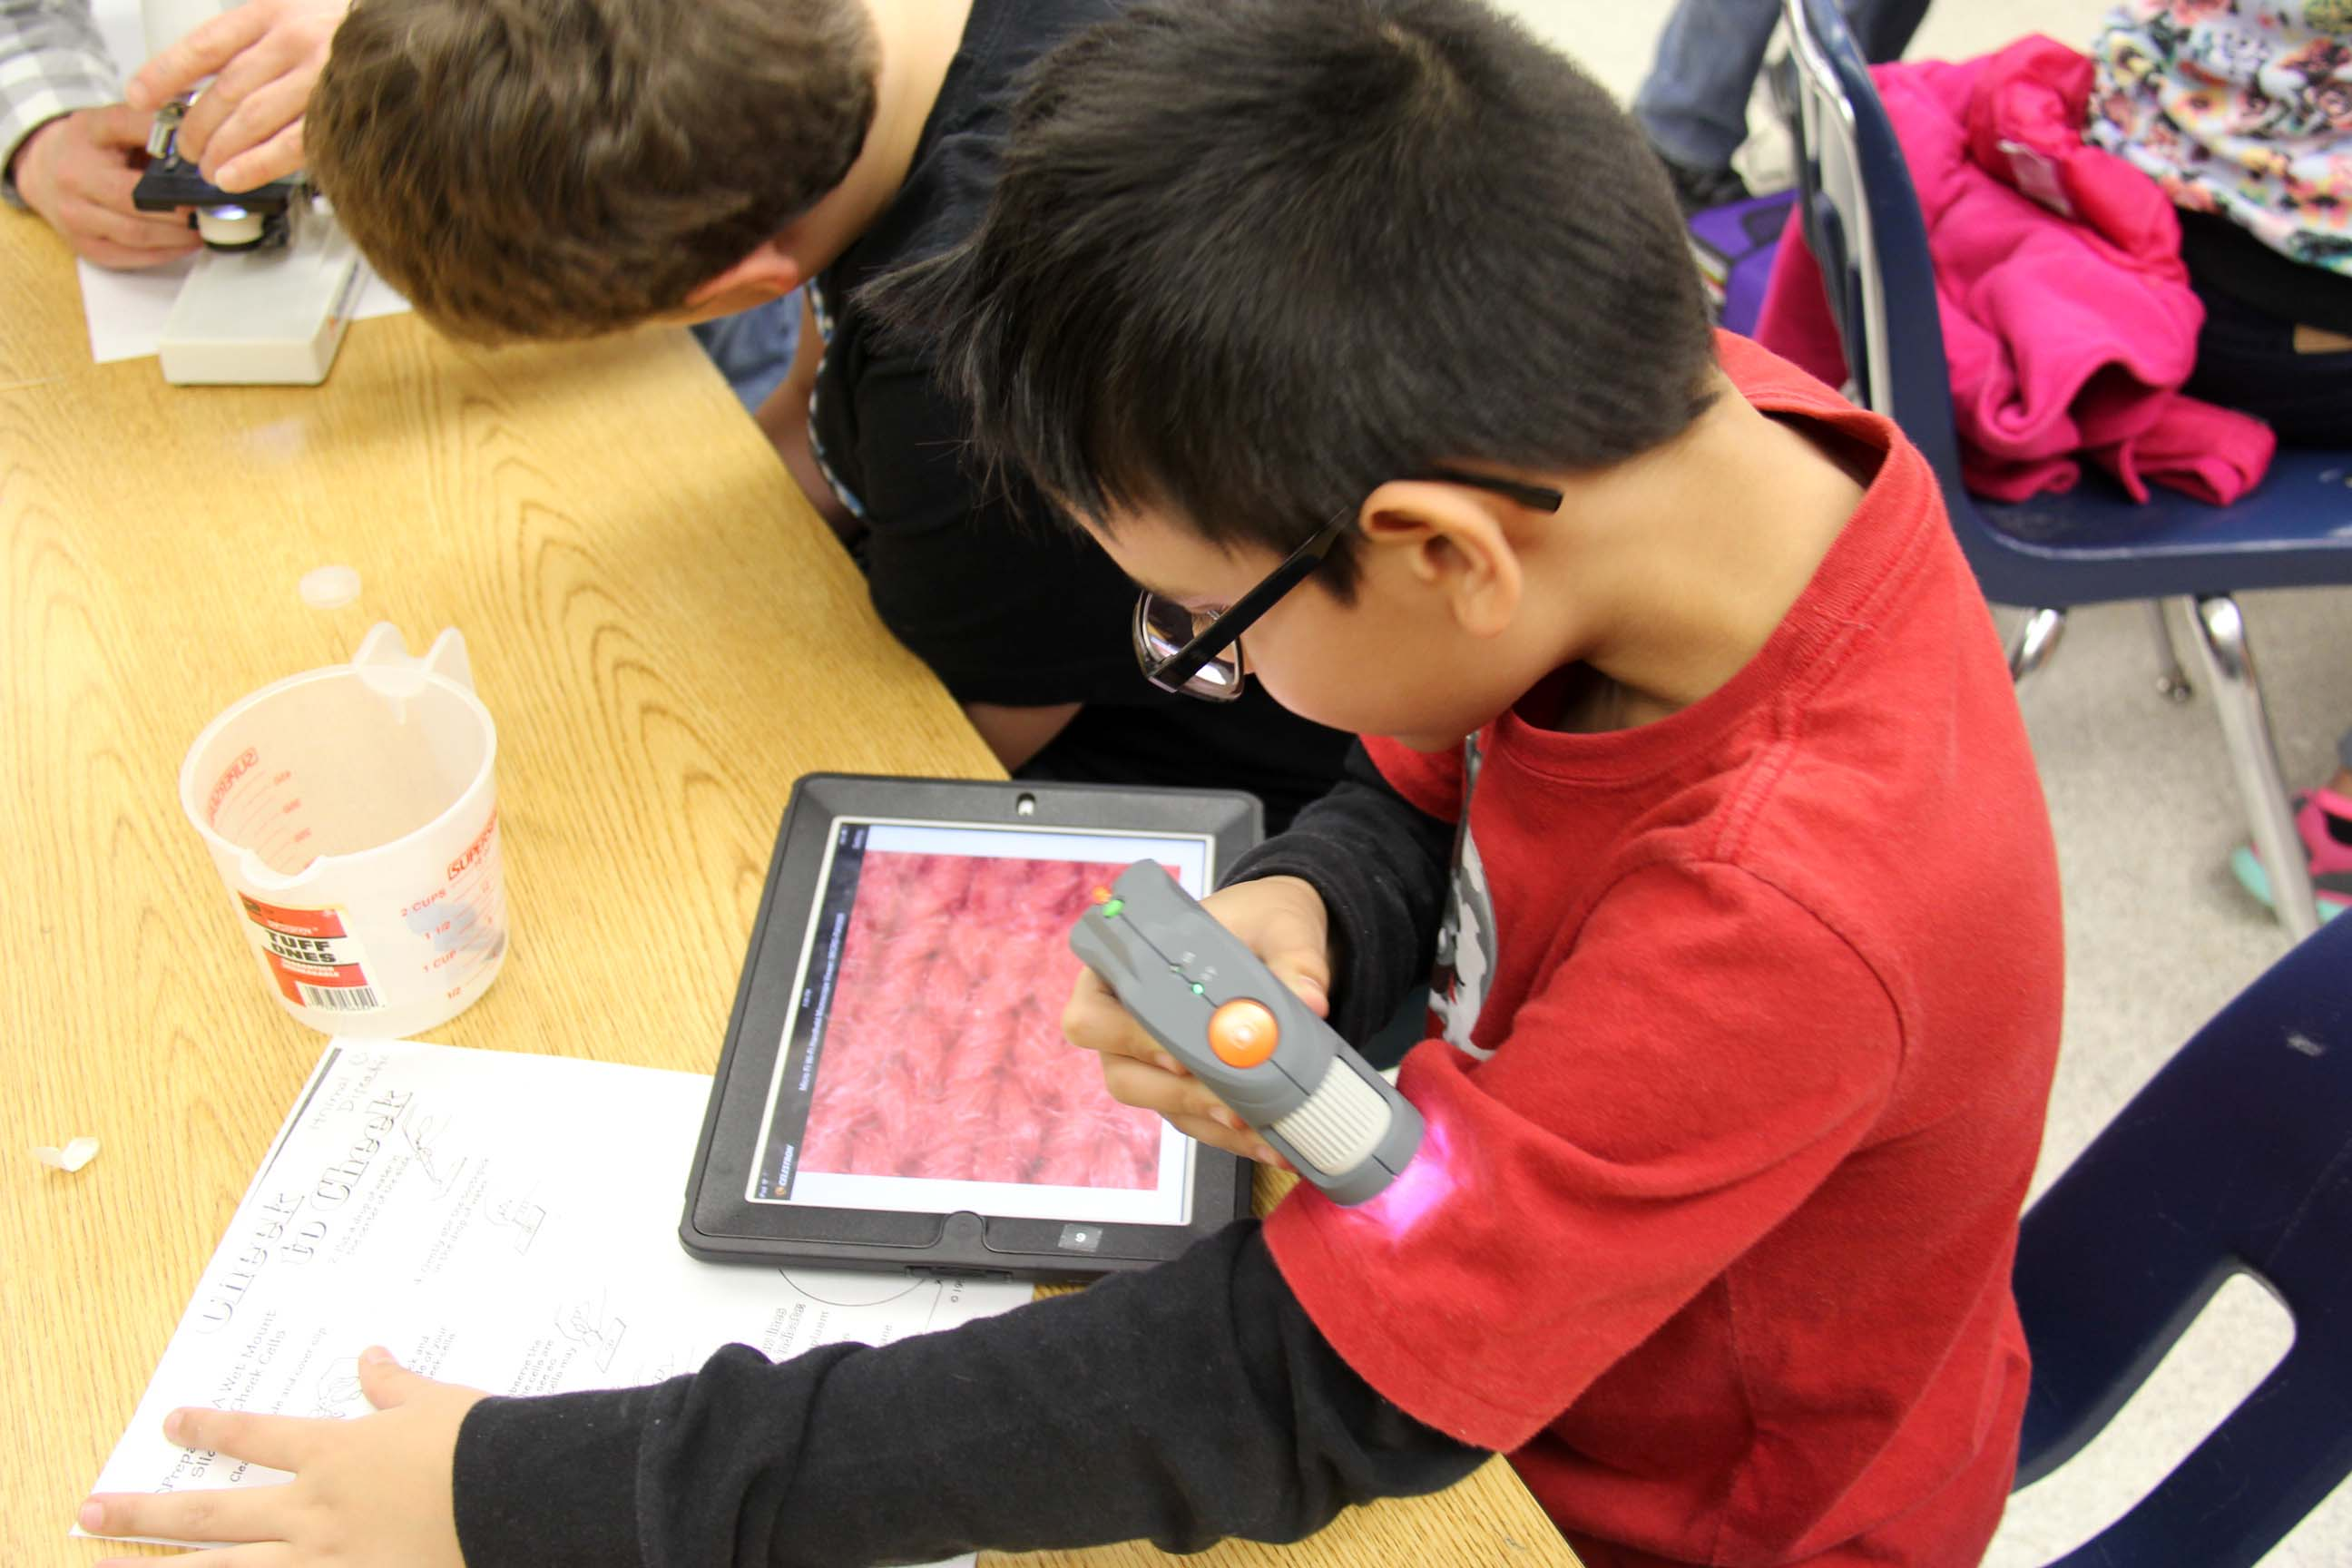 A fifth-grader uses a Micro Fi for a close-up view of the fabric in his shirt.